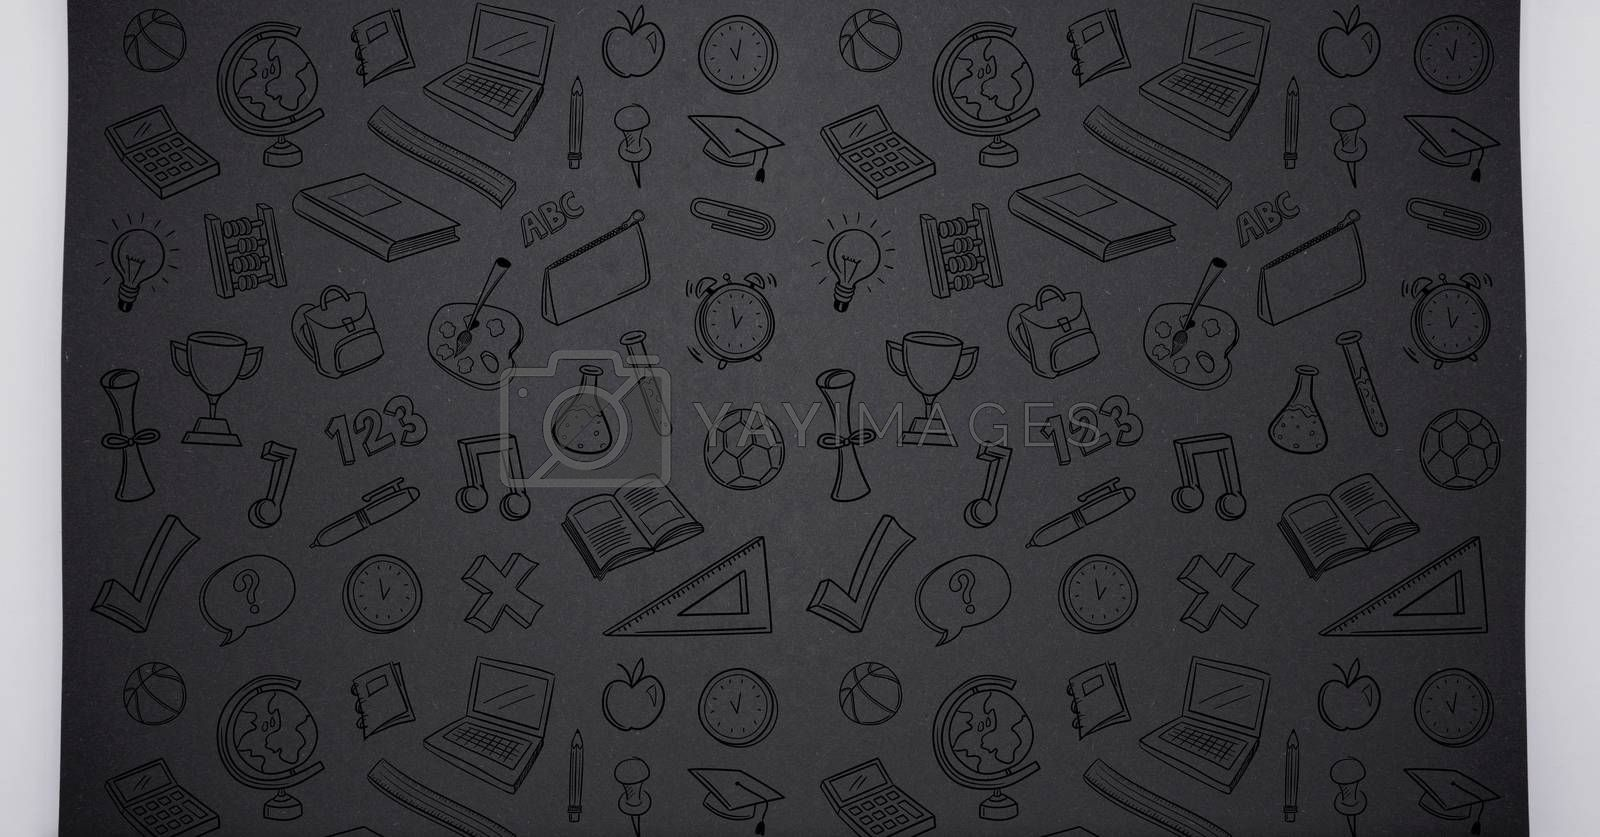 Digital composite of Education drawing icons on blackboard